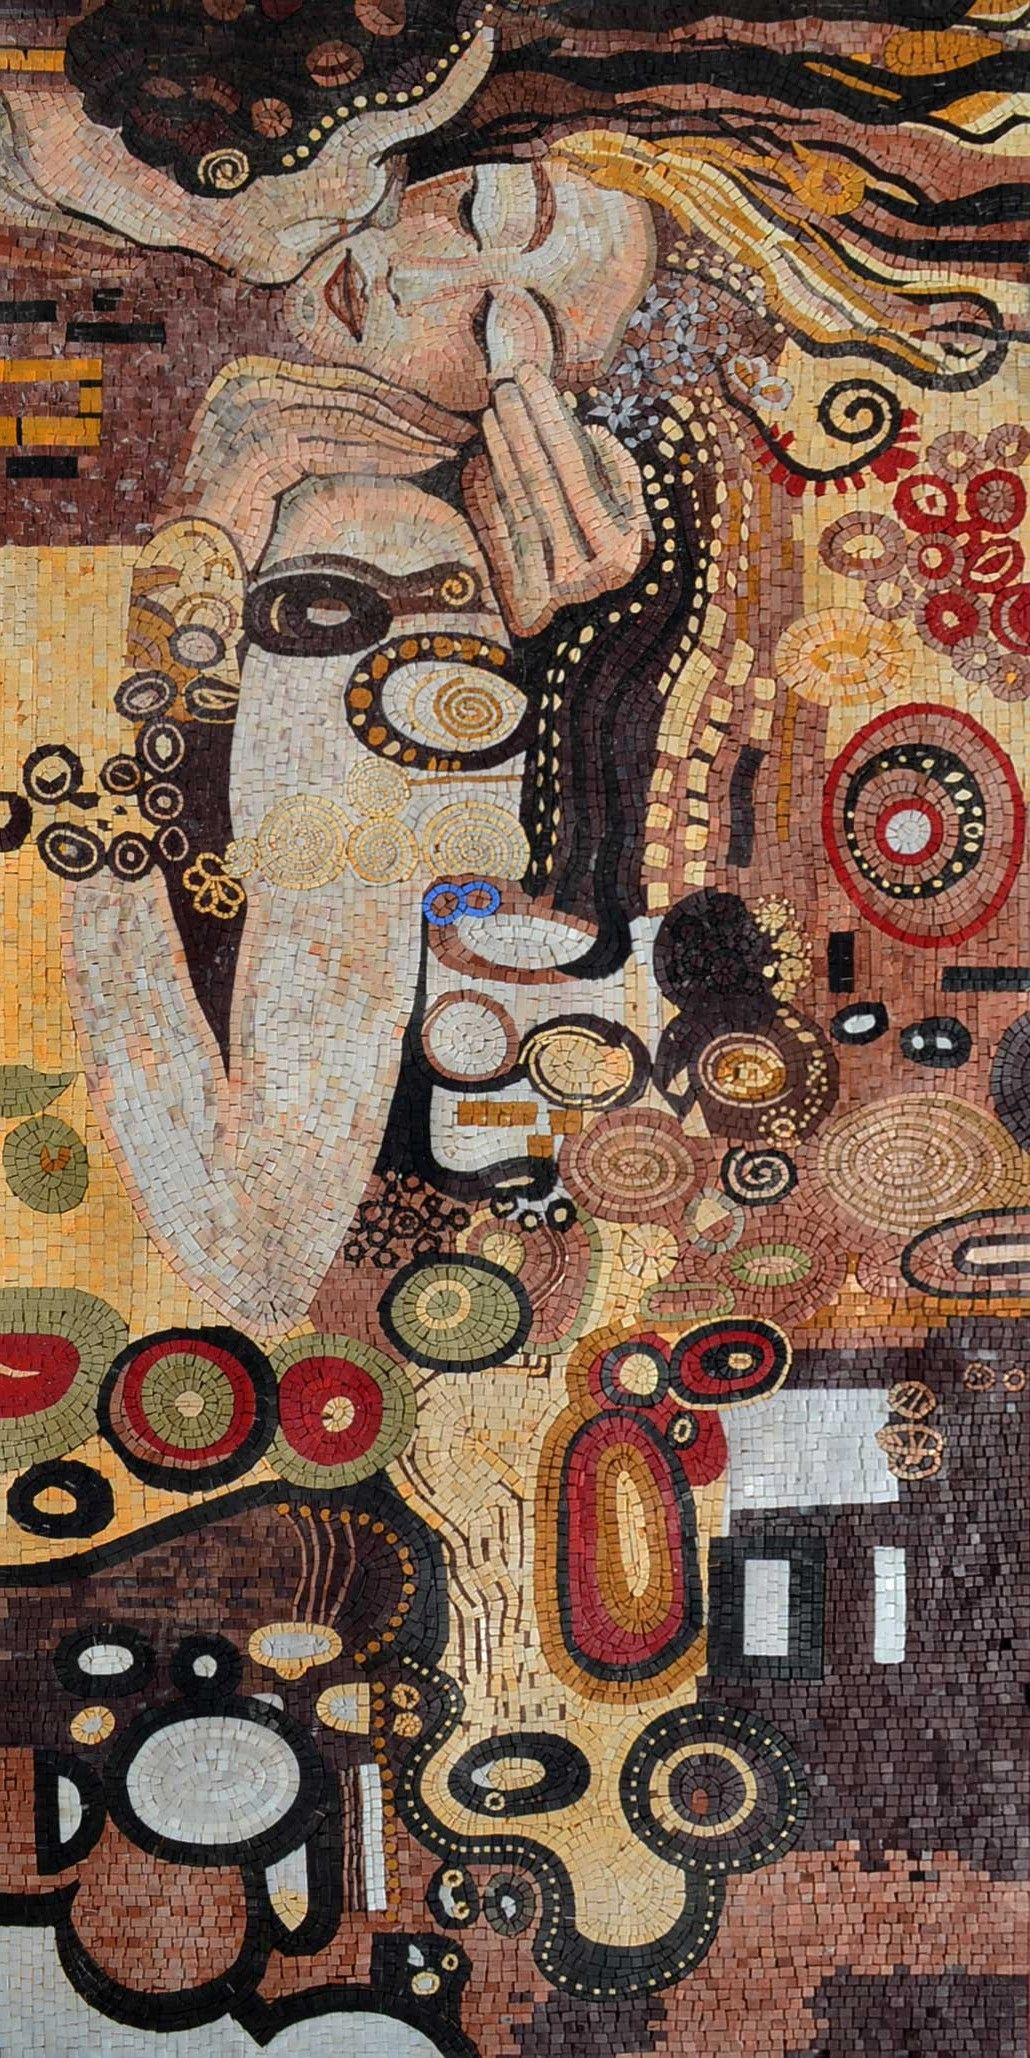 Take a look at how Austrian painter Gustav Klimt inspired some of our most prominent mosaic pieces!